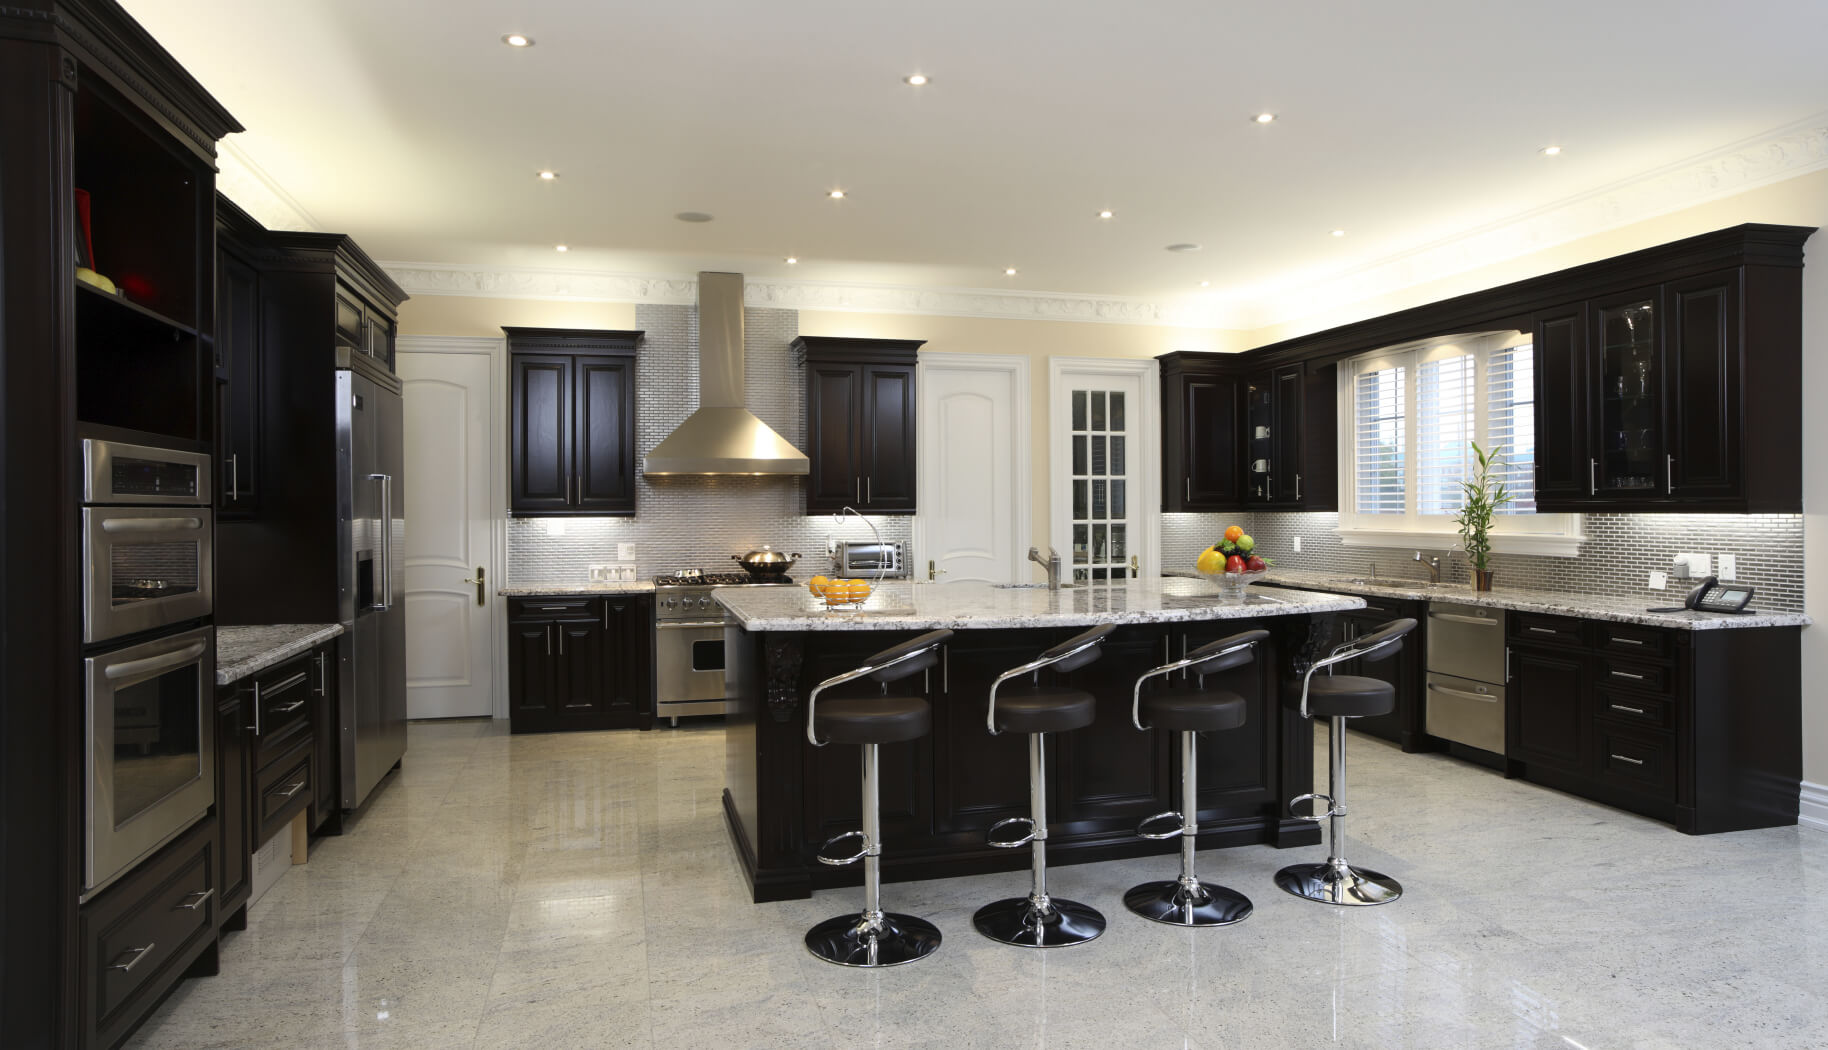 ^ 52 Dark Kitchens with Dark Wood and Black Kitchen abinets